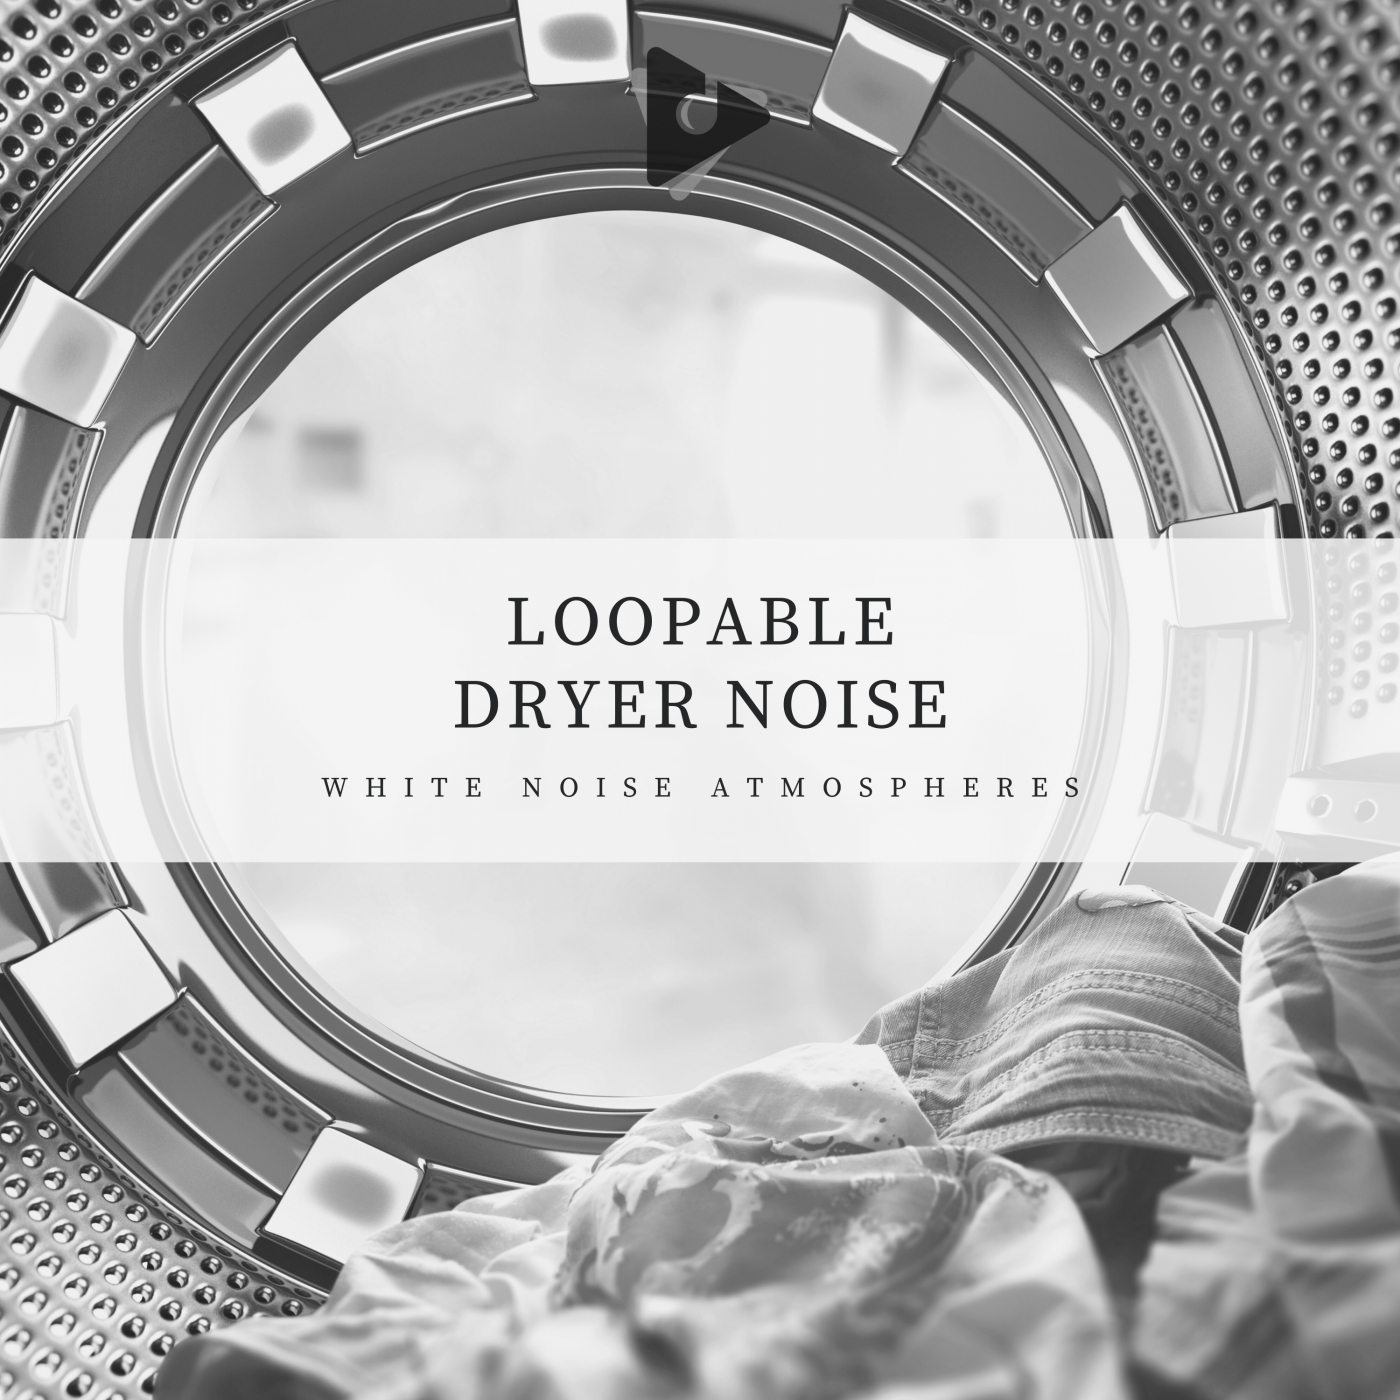 Loopable Dryer Noise